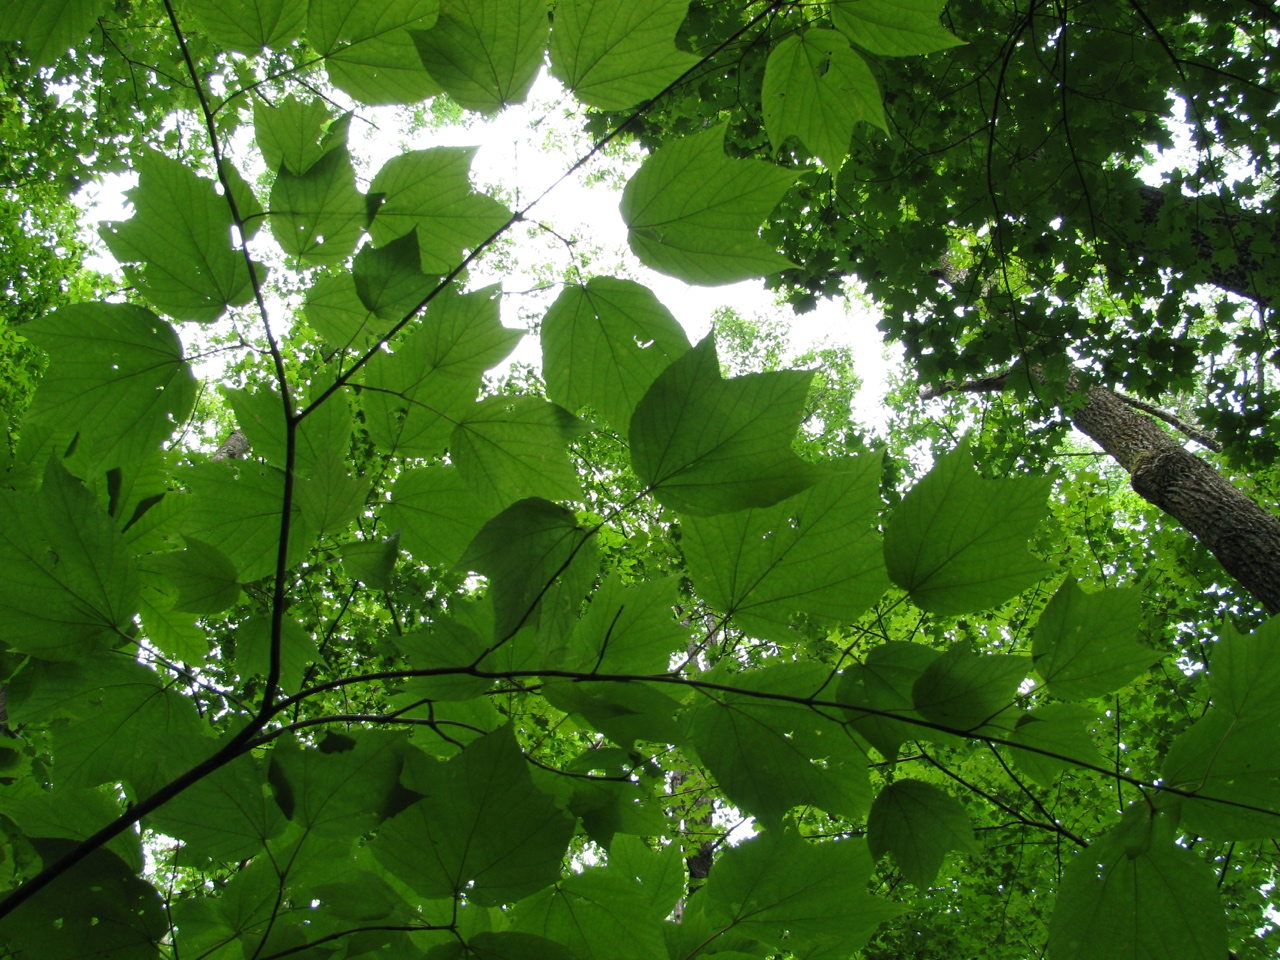 The Scientific Name is Acer pensylvanicum. You will likely hear them called Striped Maple, Moosewood, Whistlewood, Goosefoot Maple. This picture shows the  of Acer pensylvanicum